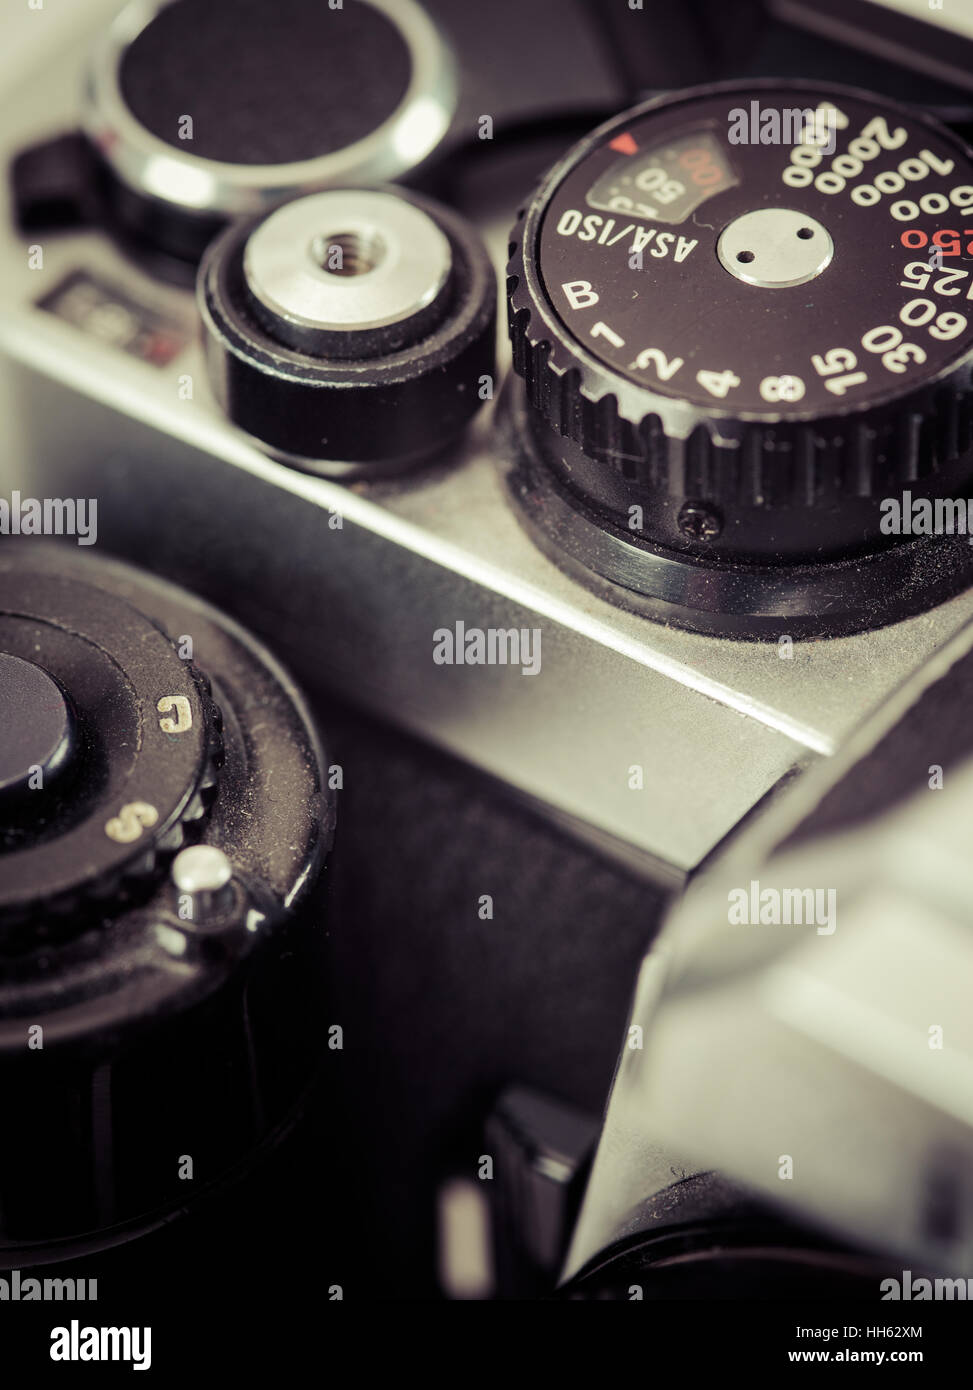 Macro photo of the shutter knob and shutter release of an old 35mm film camera. Filtered to look vintage. - Stock Image